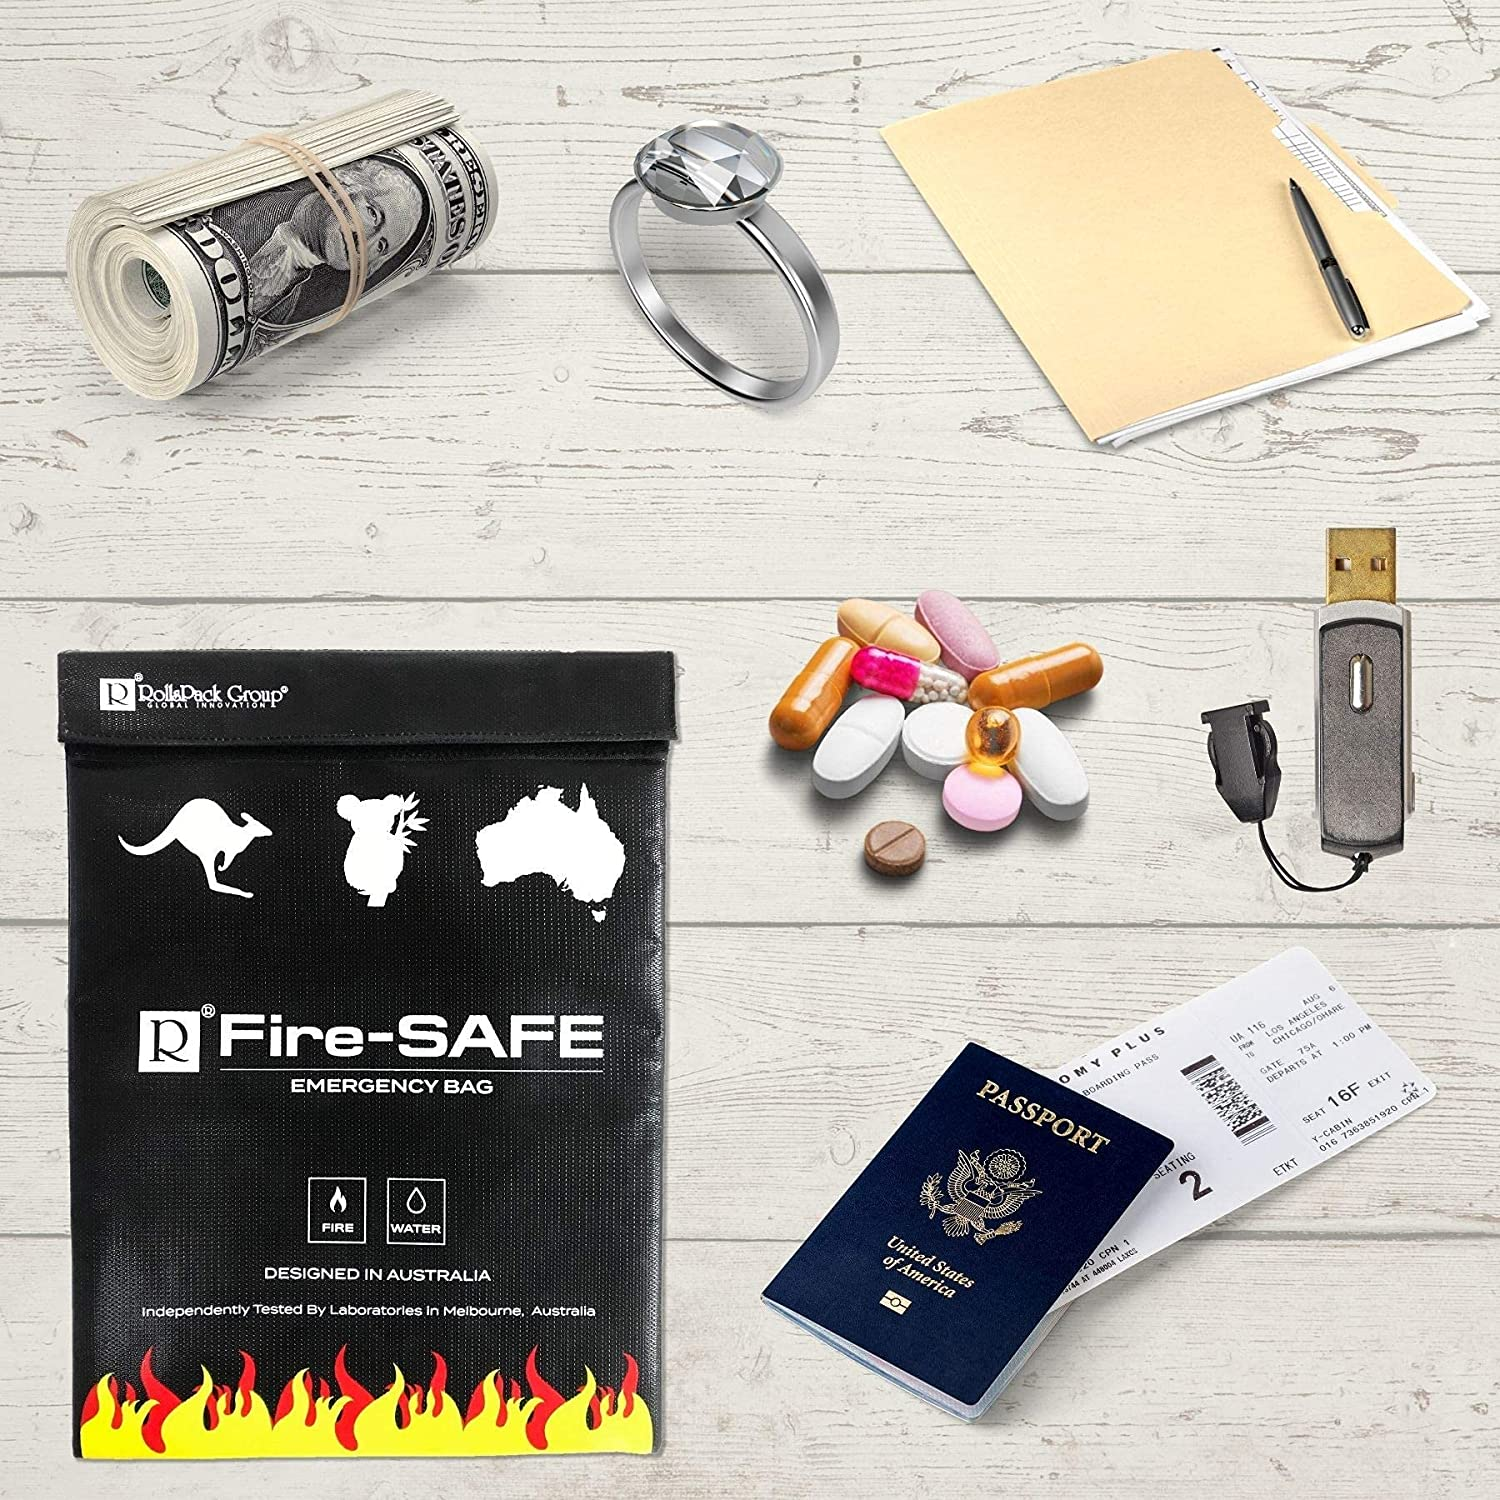 Fireproof/Waterproof Safe Bag - Fire Resistant Bag to Protect Your Items, The FireSafe is Both A Document Bag & A Fire Bag, This Fire Resistant Document Bag Has Been Independently Tested.: Office Products